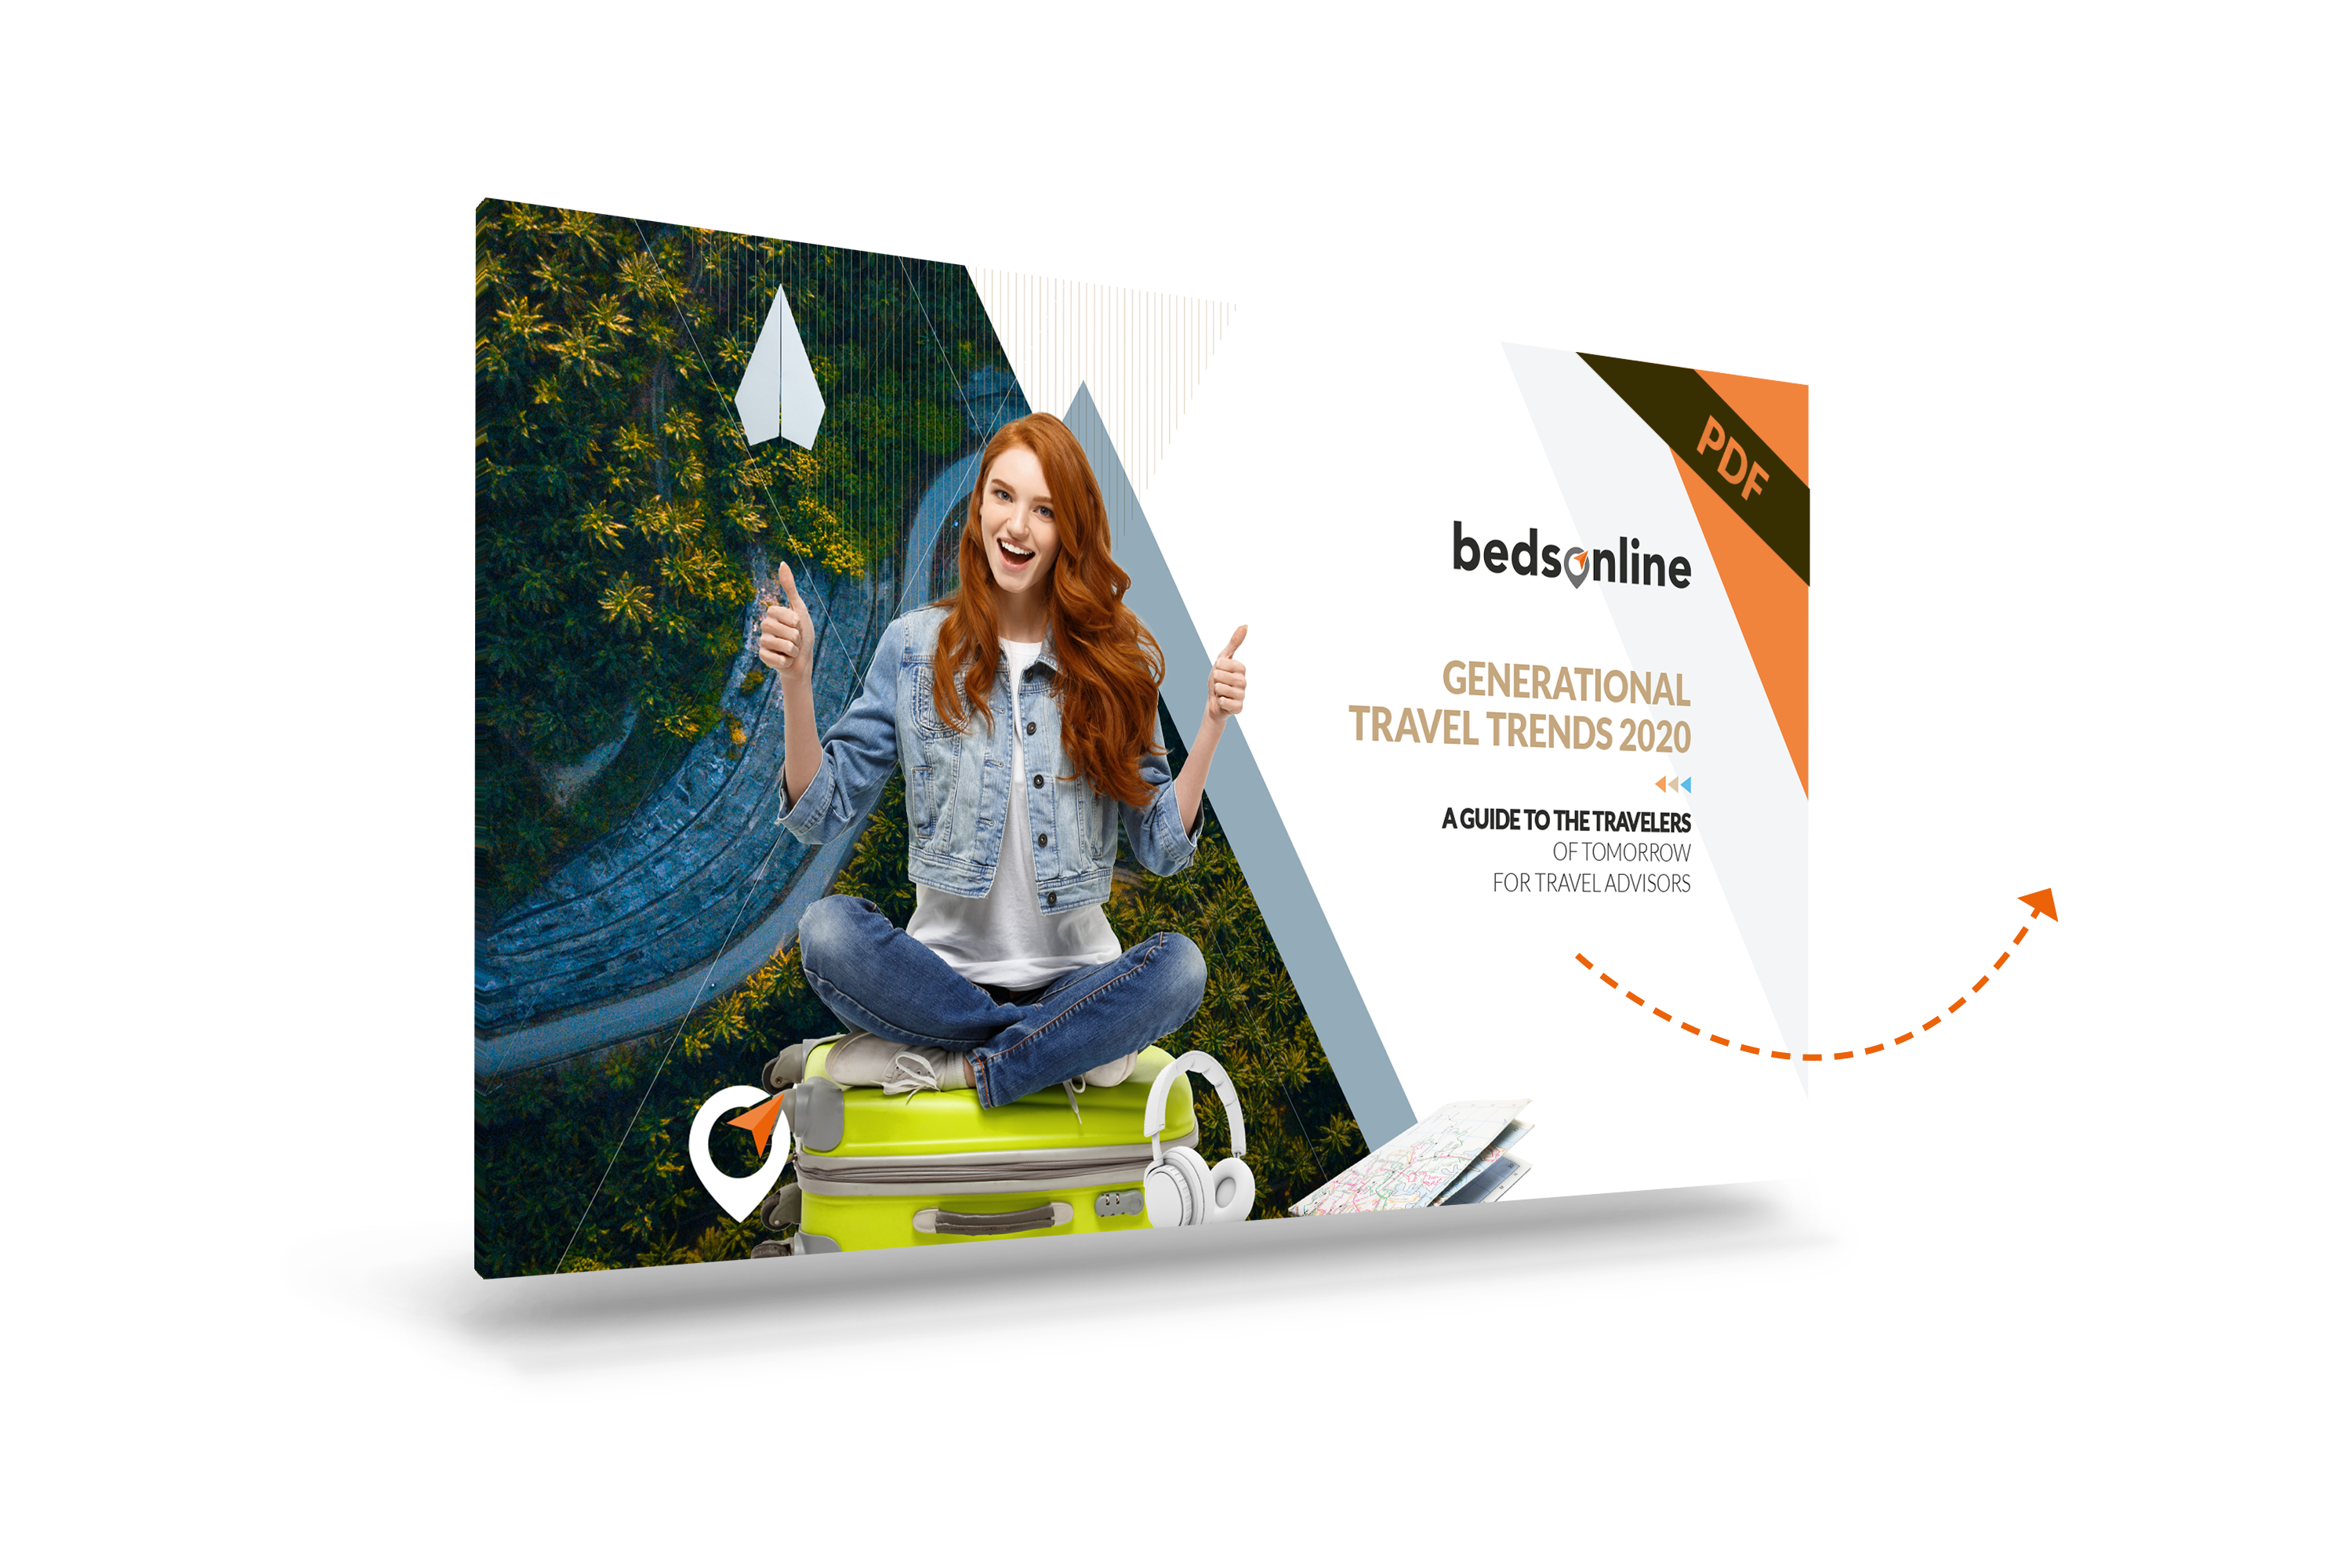 Bedsonline GENERATIONAL TRAVEL TRENDS 2020